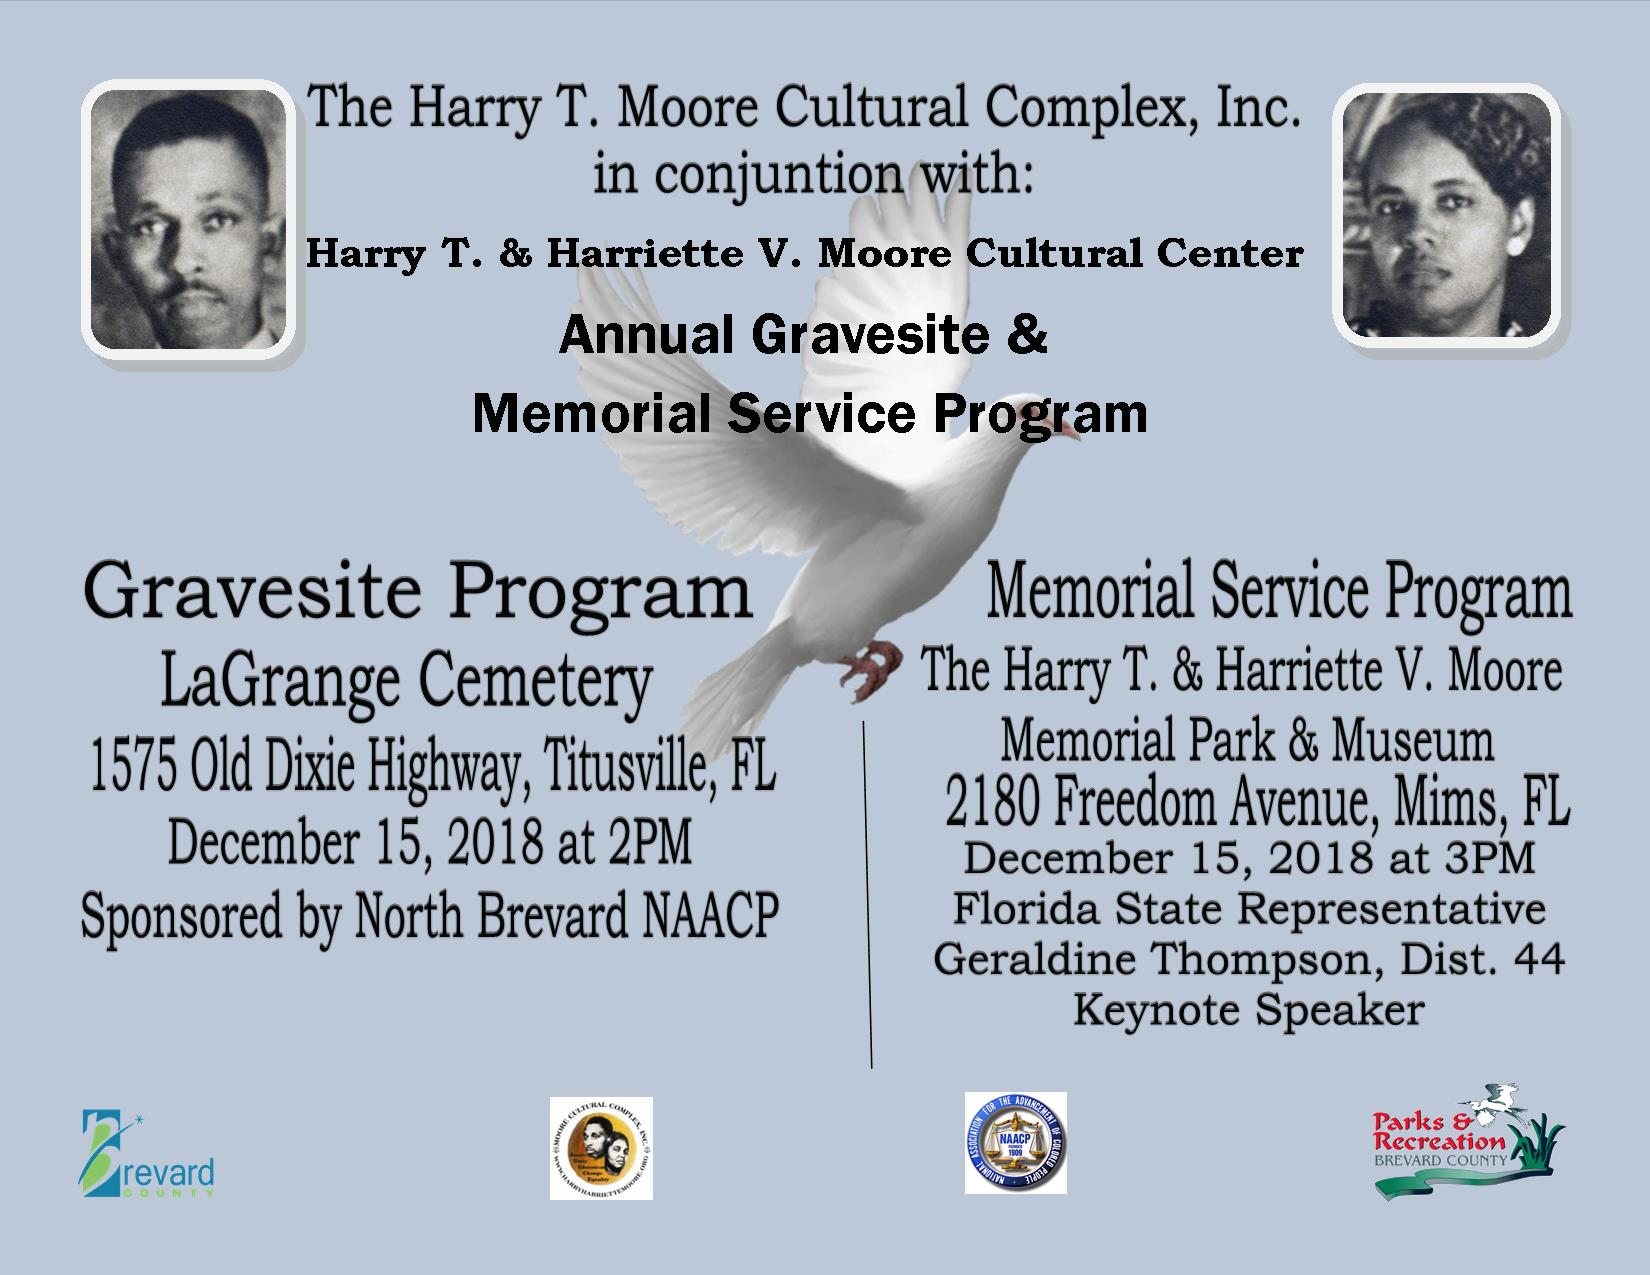 Harry T. & Harriette V. Moore Annual Gravesite & Memorial Service Program